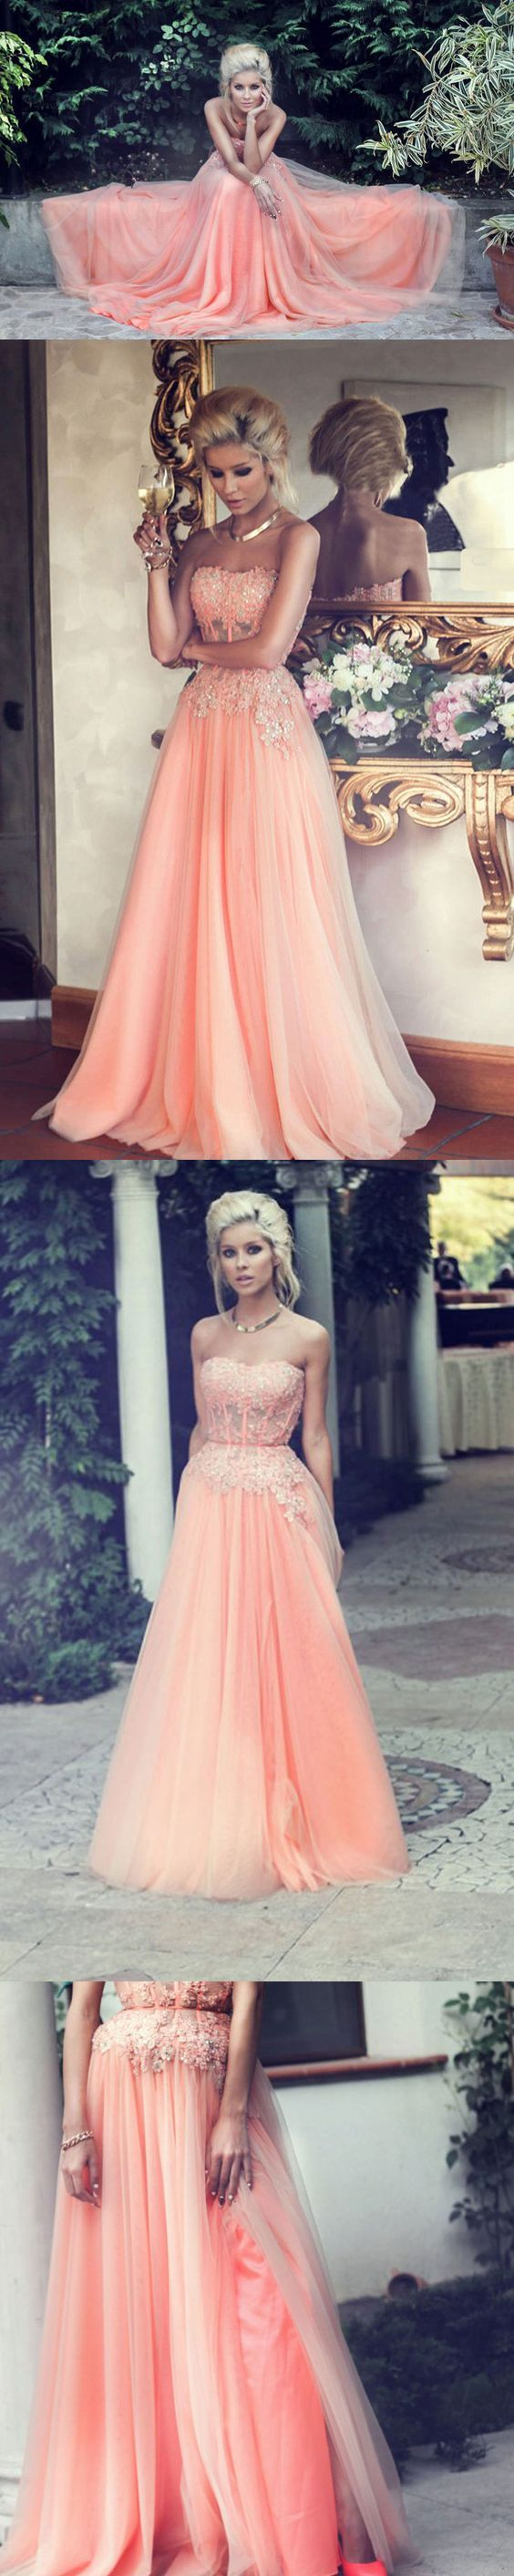 2016 Beautiful Prom Dress/Evening Dress, So Lovely, Love it very much!!!!!: